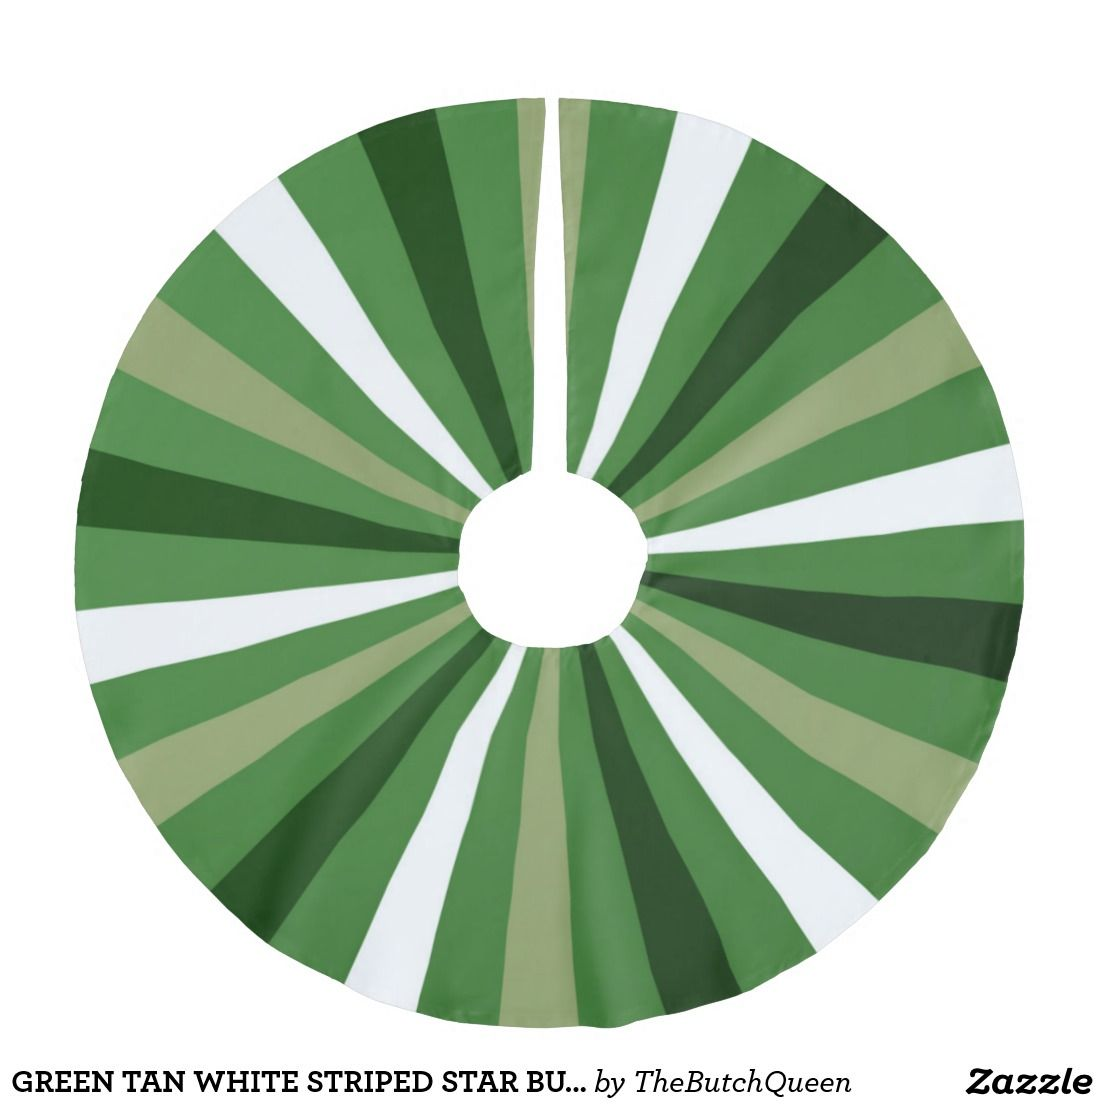 GREEN TAN WHITE STRIPED STAR BURST BRUSHED POLYESTER TREE SKIRT